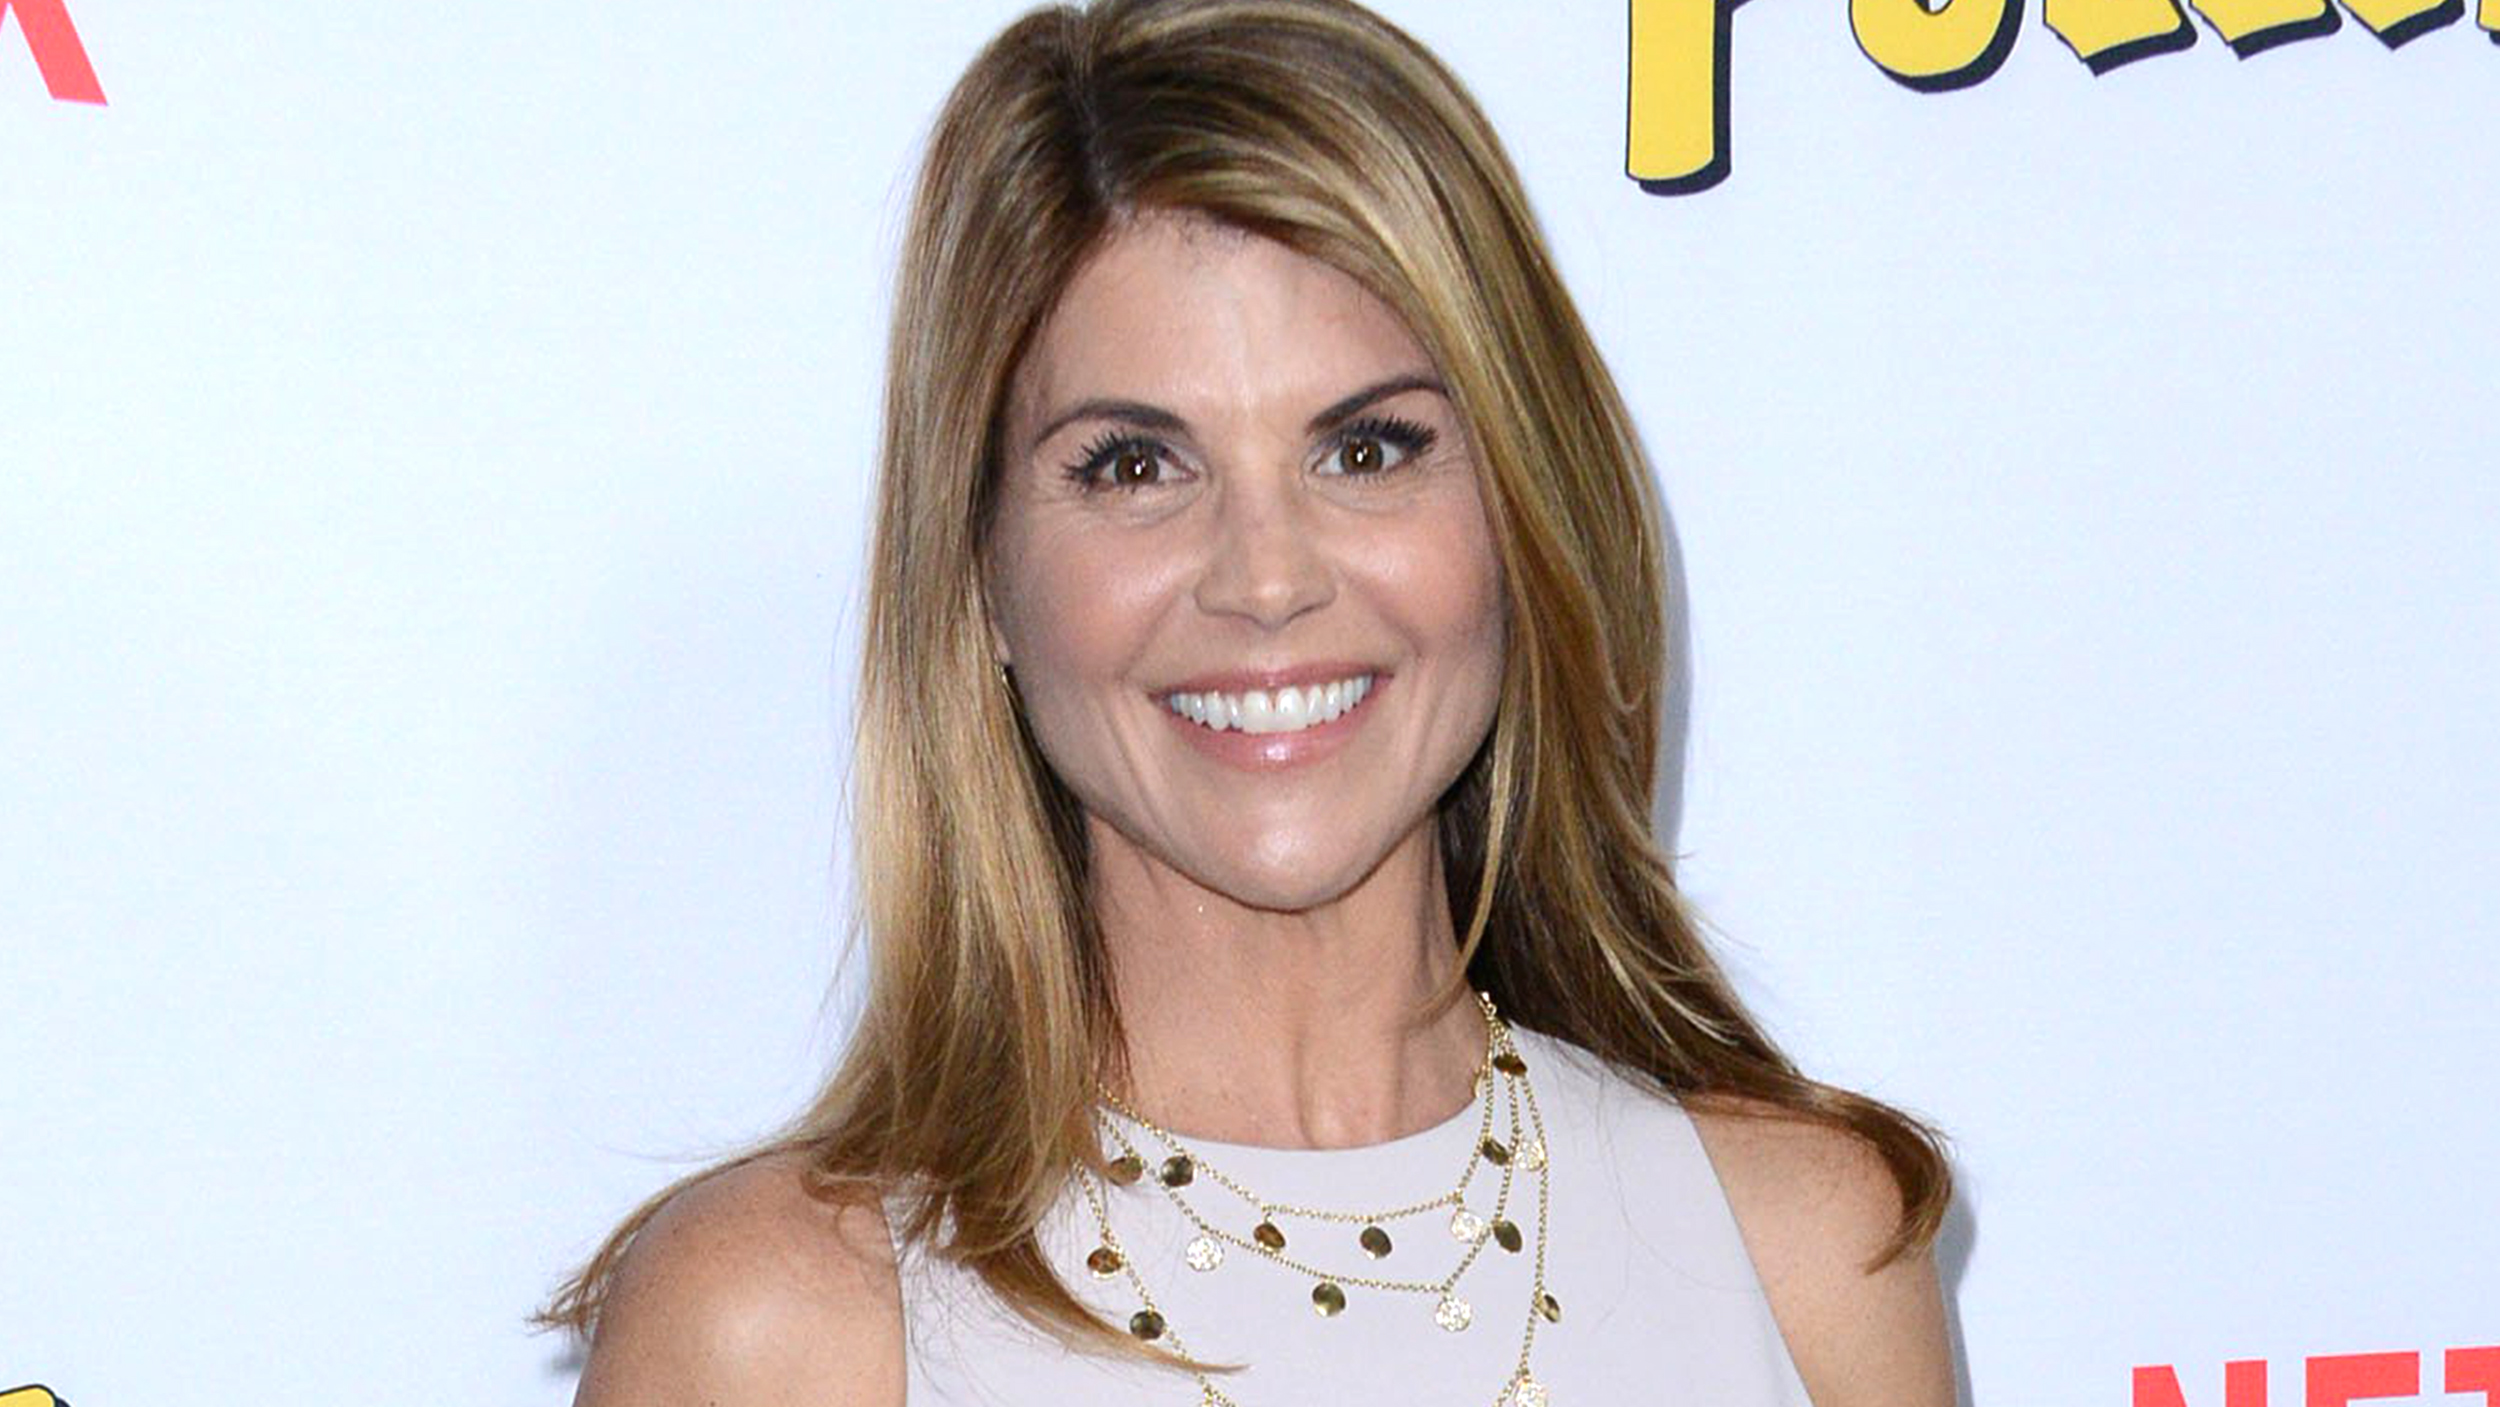 lori loughlin imdblori loughlin wiki, lori loughlin and husband, lori loughlin 90210, lori loughlin full house, lori loughlin 2016, lori loughlin facebook, lori loughlin netflix, lori loughlin and john stamos, lori loughlin instagram, lori loughlin and john stamos married, lori loughlin young, lori loughlin net worth, lori loughlin daughters, lori loughlin mossimo giannulli, lori loughlin 2015, lori loughlin plastic surgery, lori loughlin imdb, lori loughlin family, lori loughlin bikini, lori loughlin movies